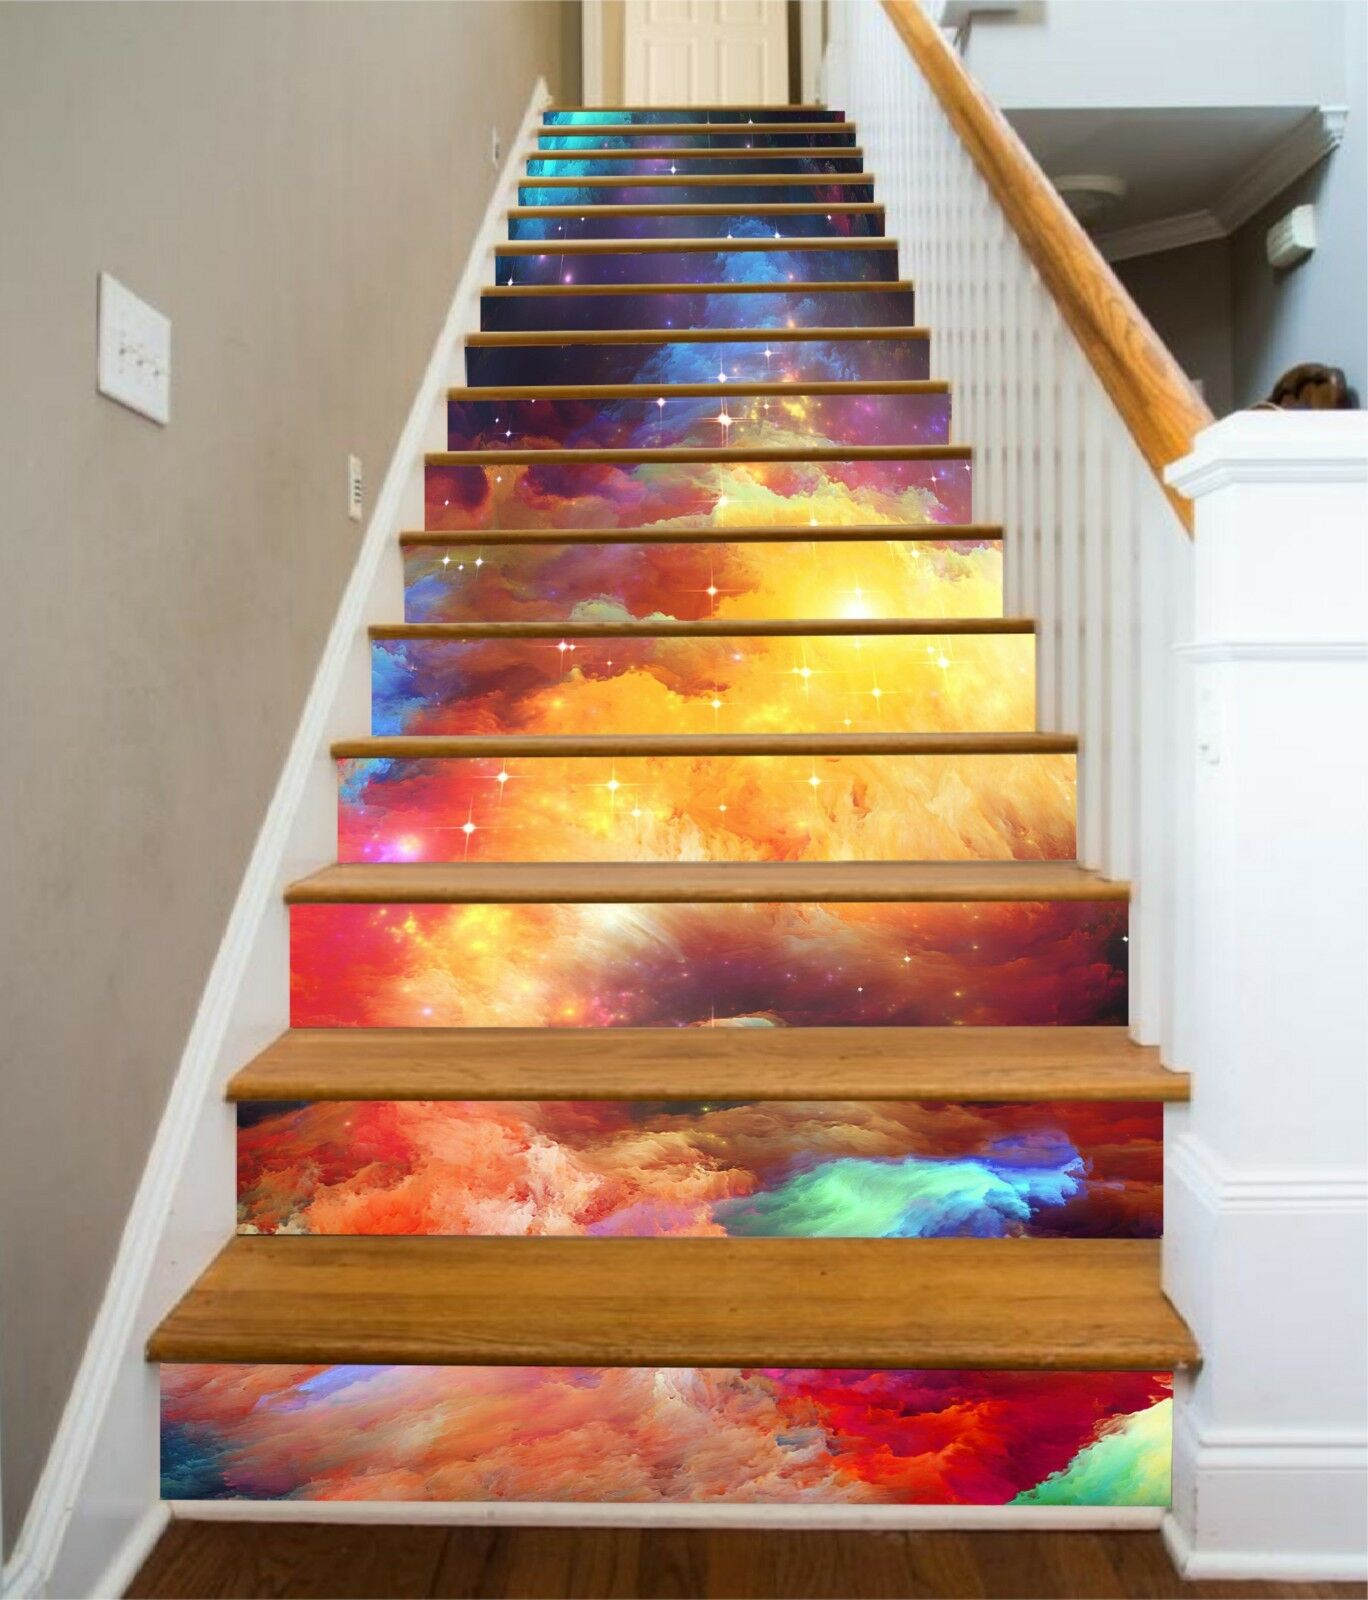 3D Couleuruge Clouds Stair Risers Decoration Photo Mural Vinyl Decal Wallpaper CA